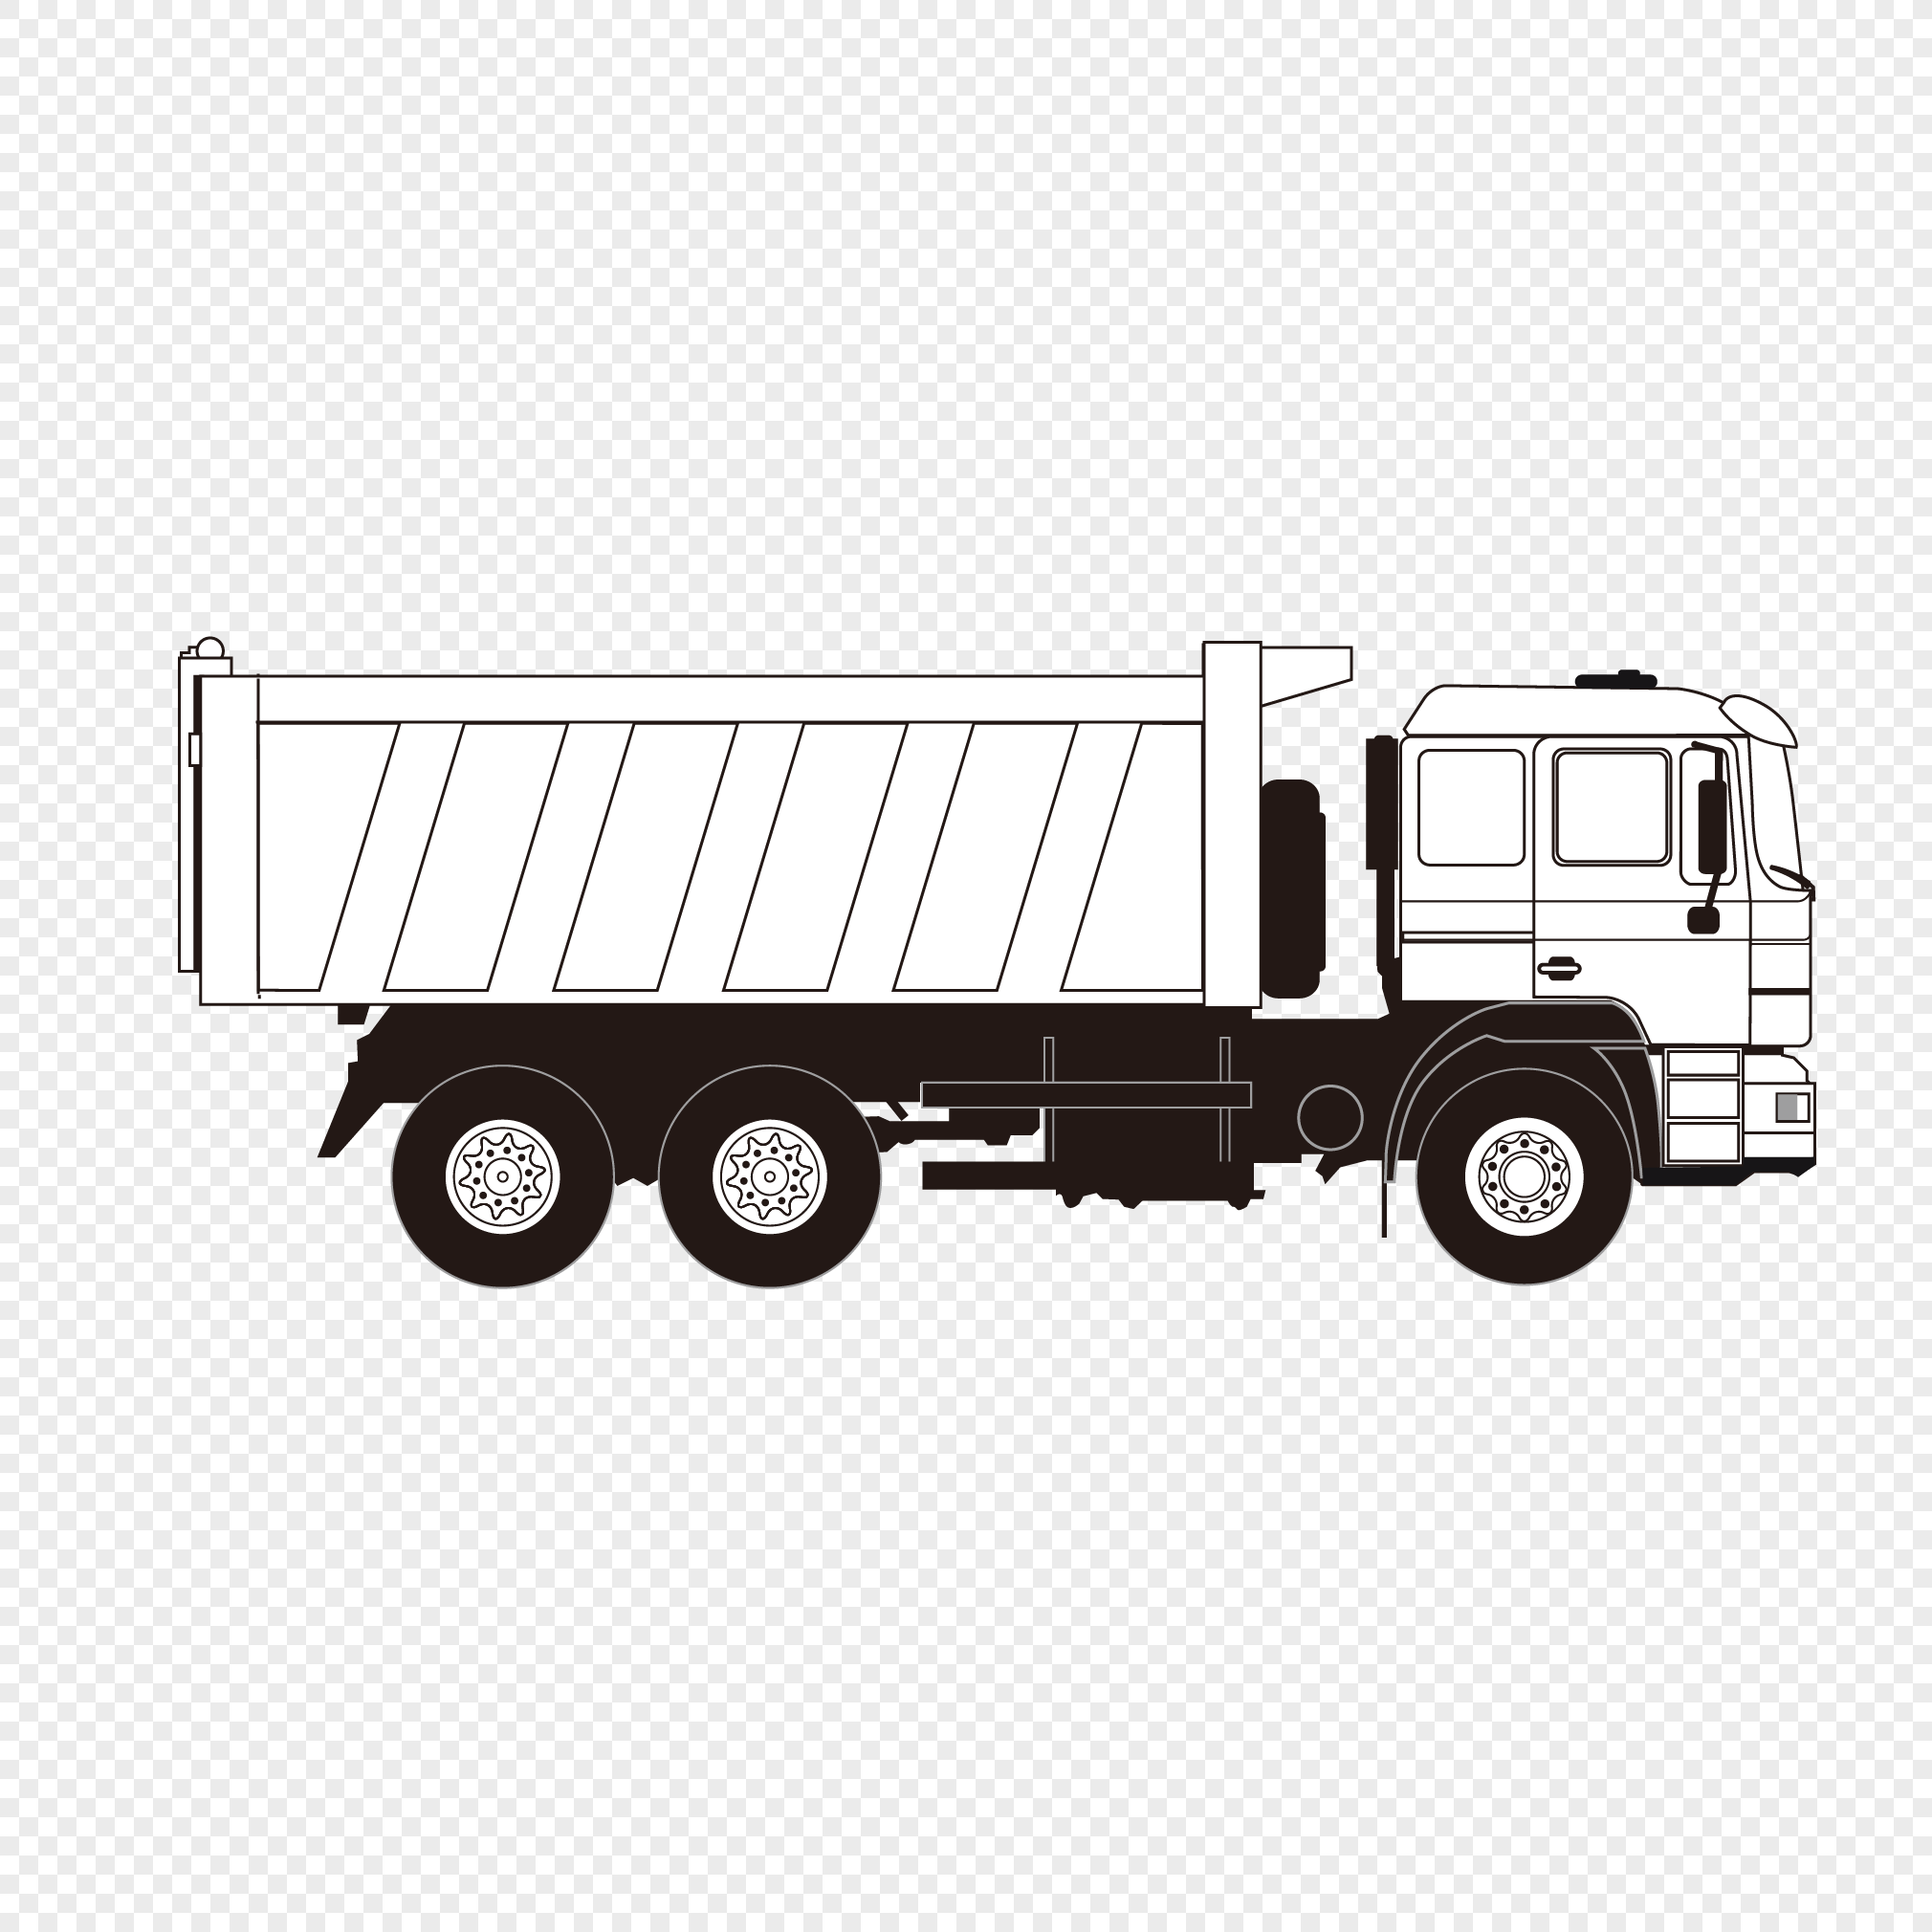 2020x2020 Crane Truck Vector Png Image Picture Free Download